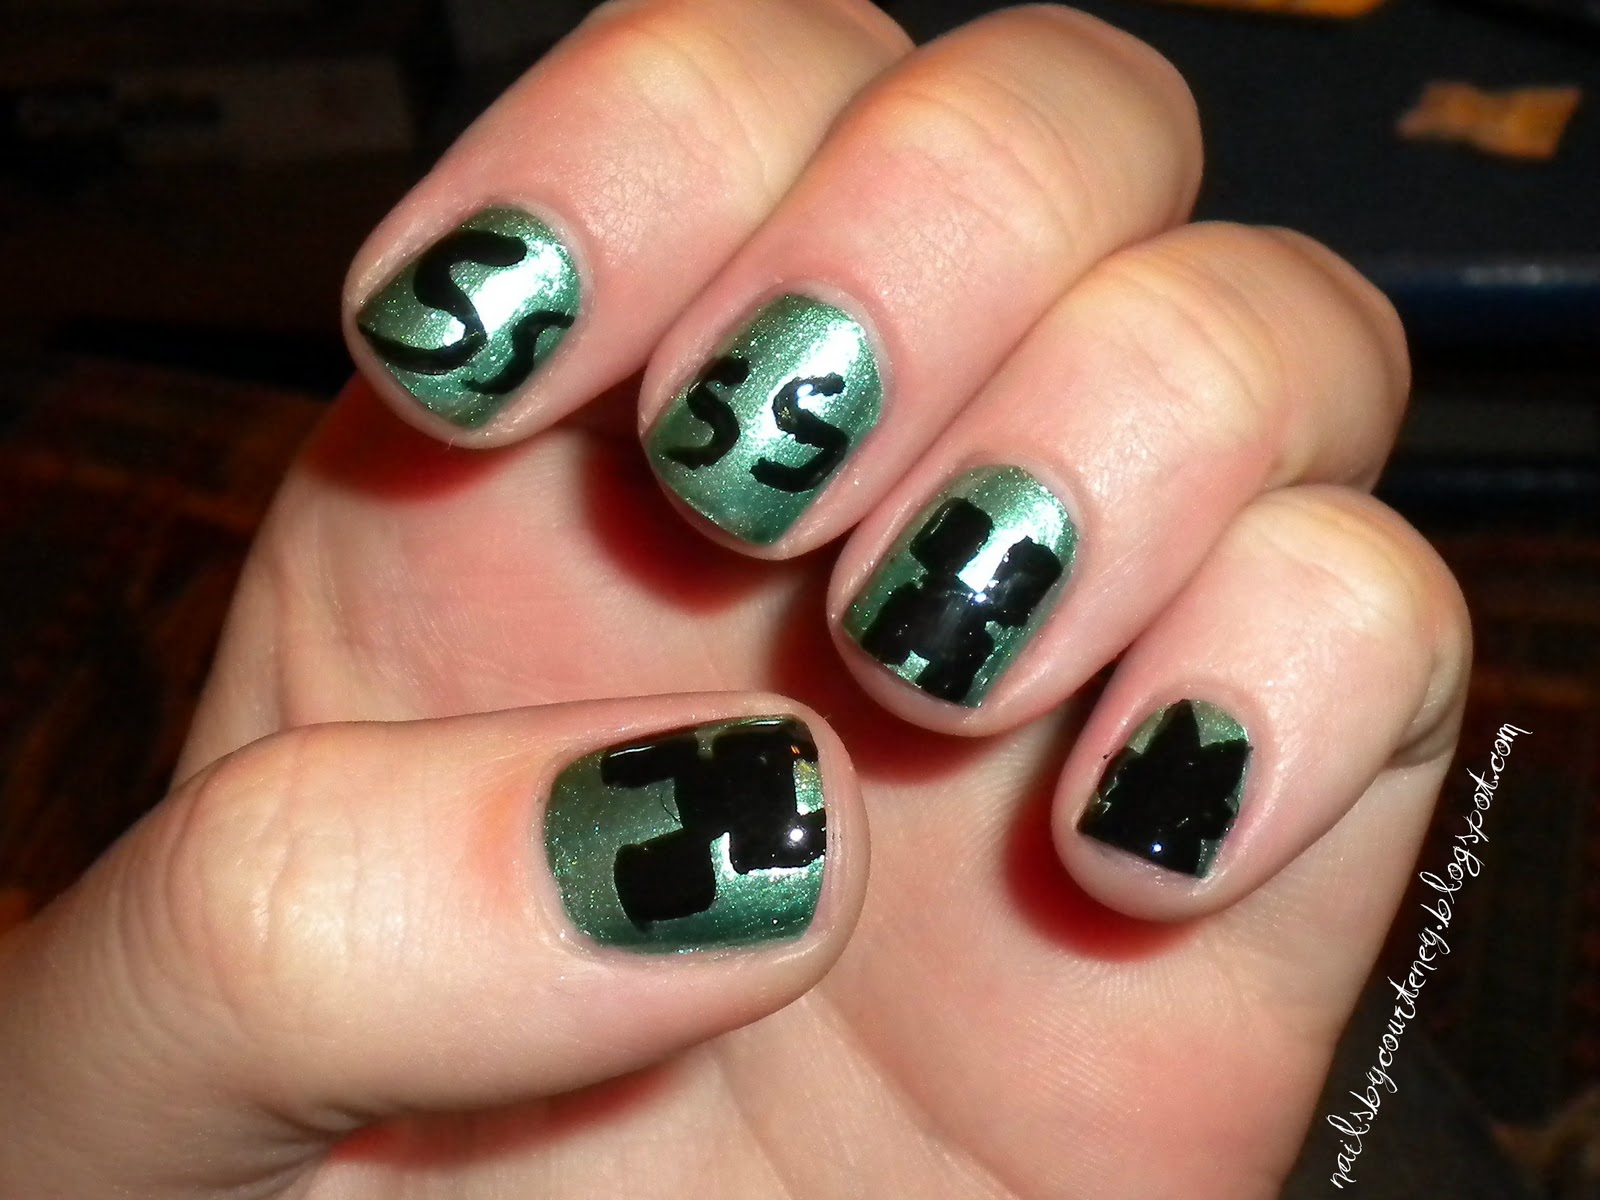 An Amateur's Nail Obsession: Video Game Nails: Minecraft